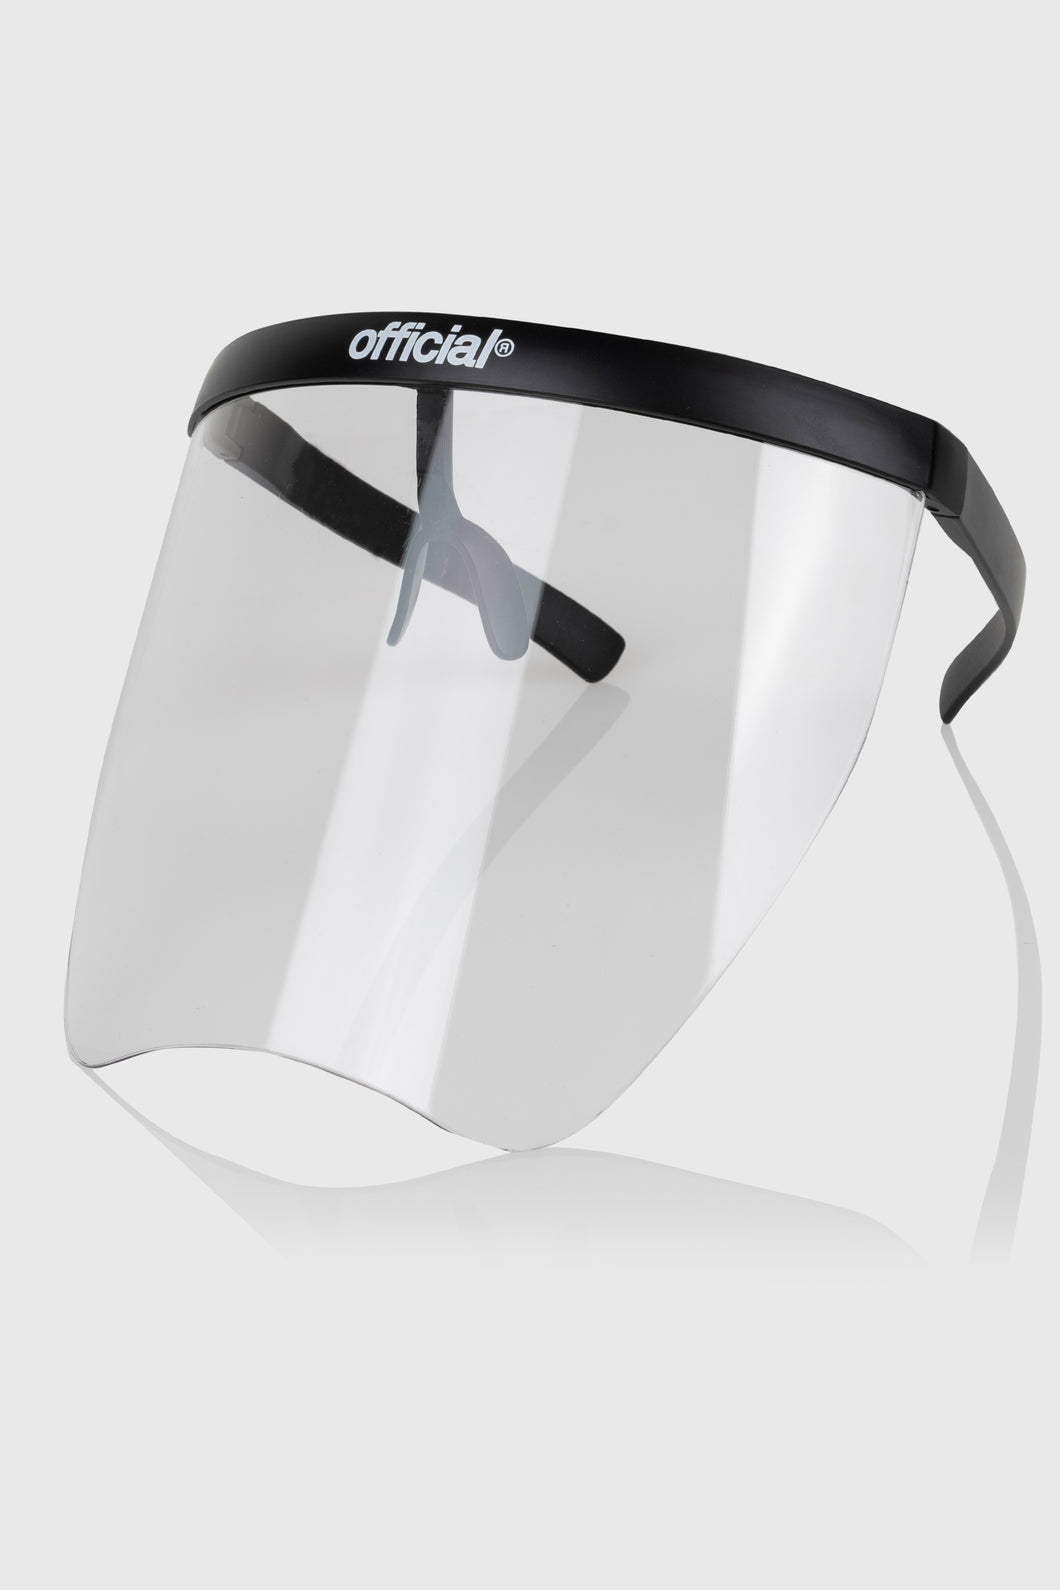 APEX Face Shield (Clear)